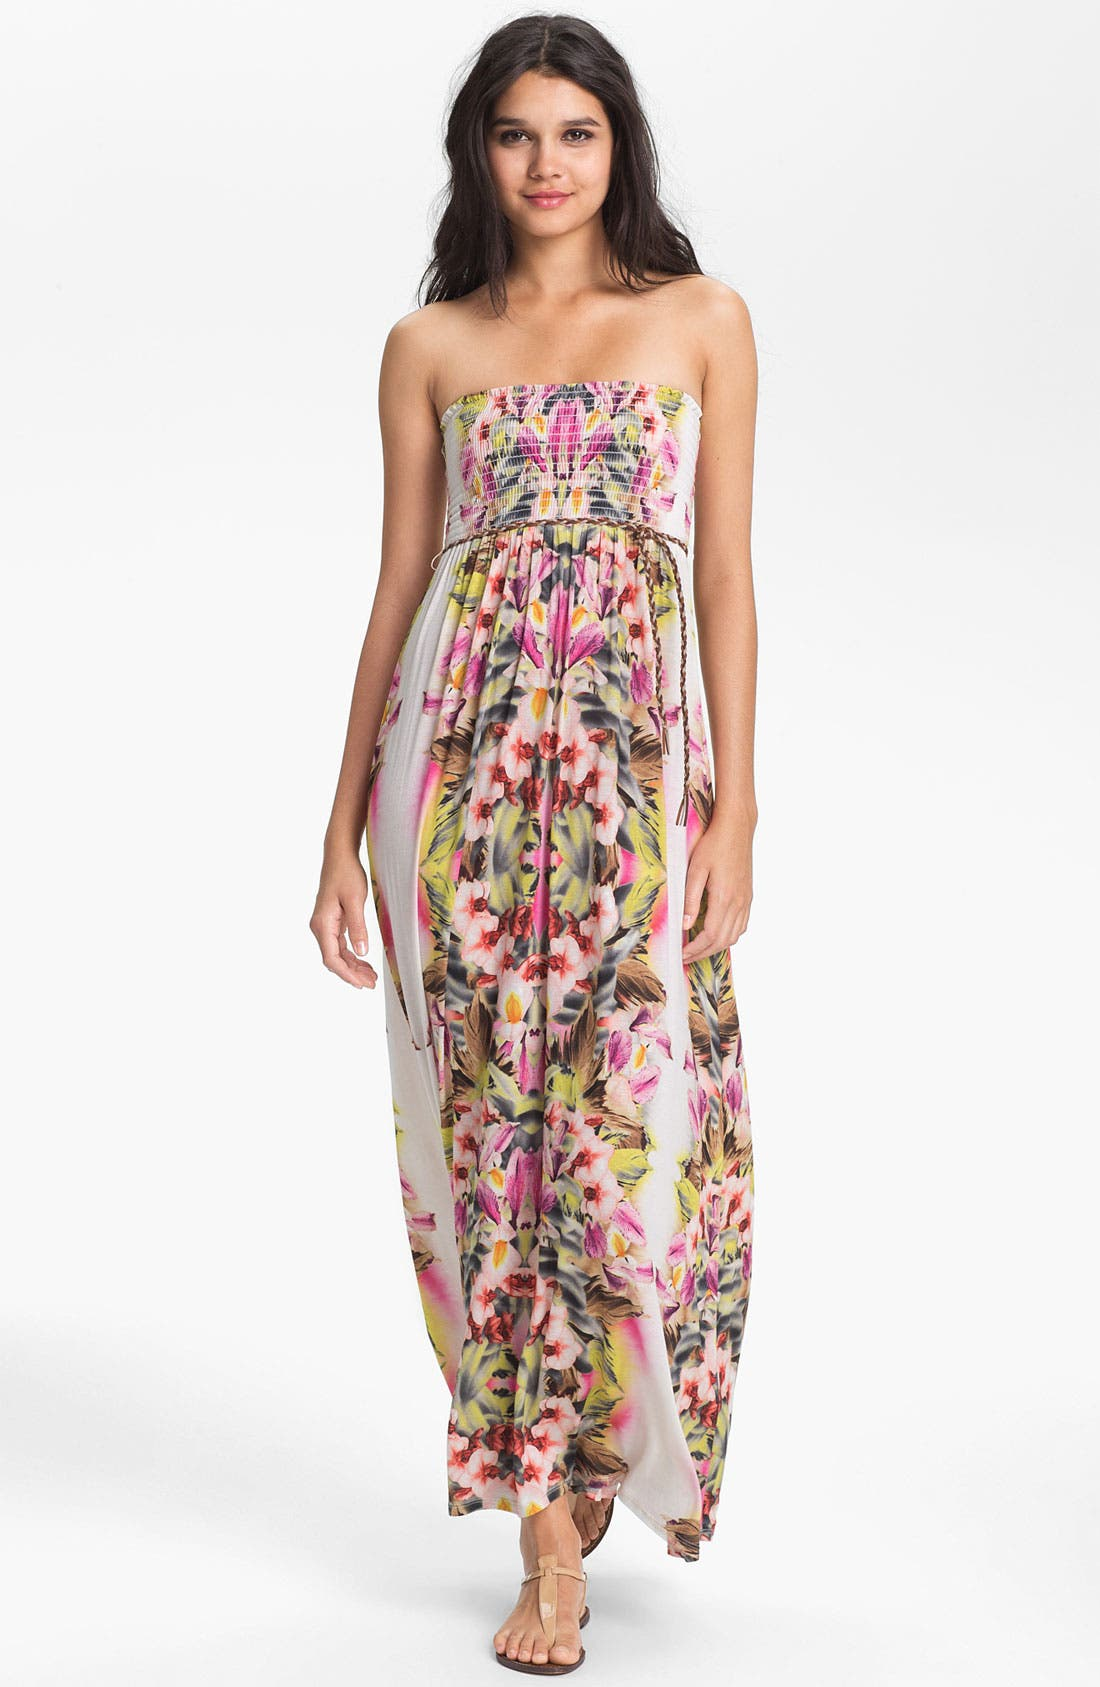 Alternate Image 1 Selected - Lily Aldridge for Velvet by Graham & Spencer Floral Print Strapless Maxi Dress